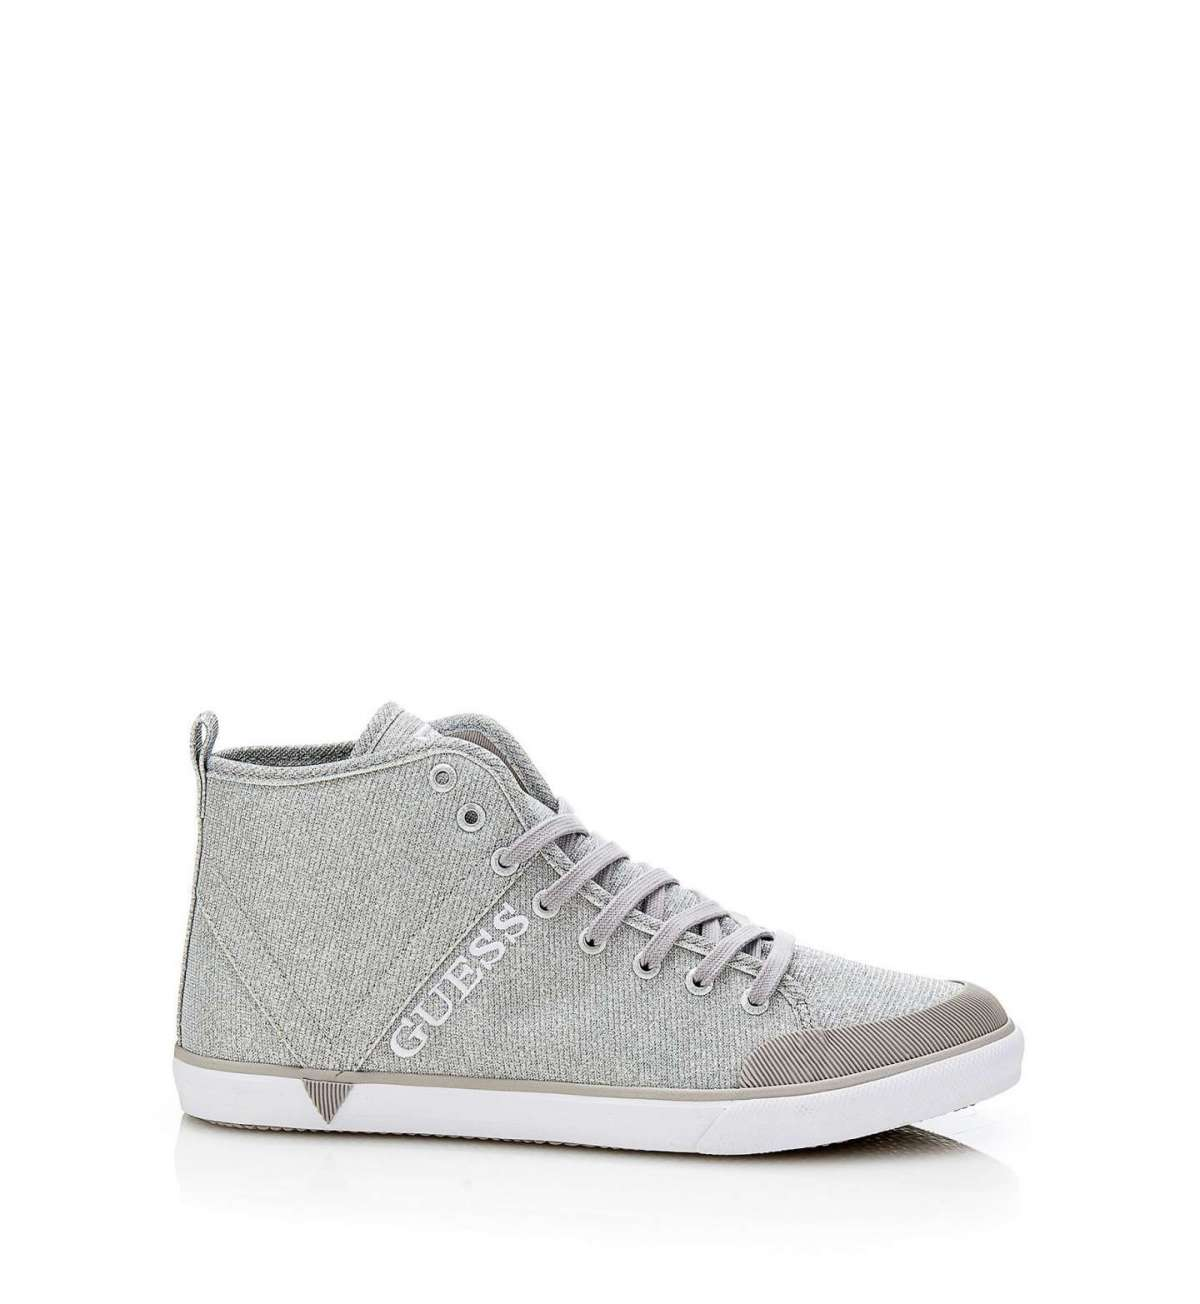 Sneakers Argento Guess Autunno Inverno 2017